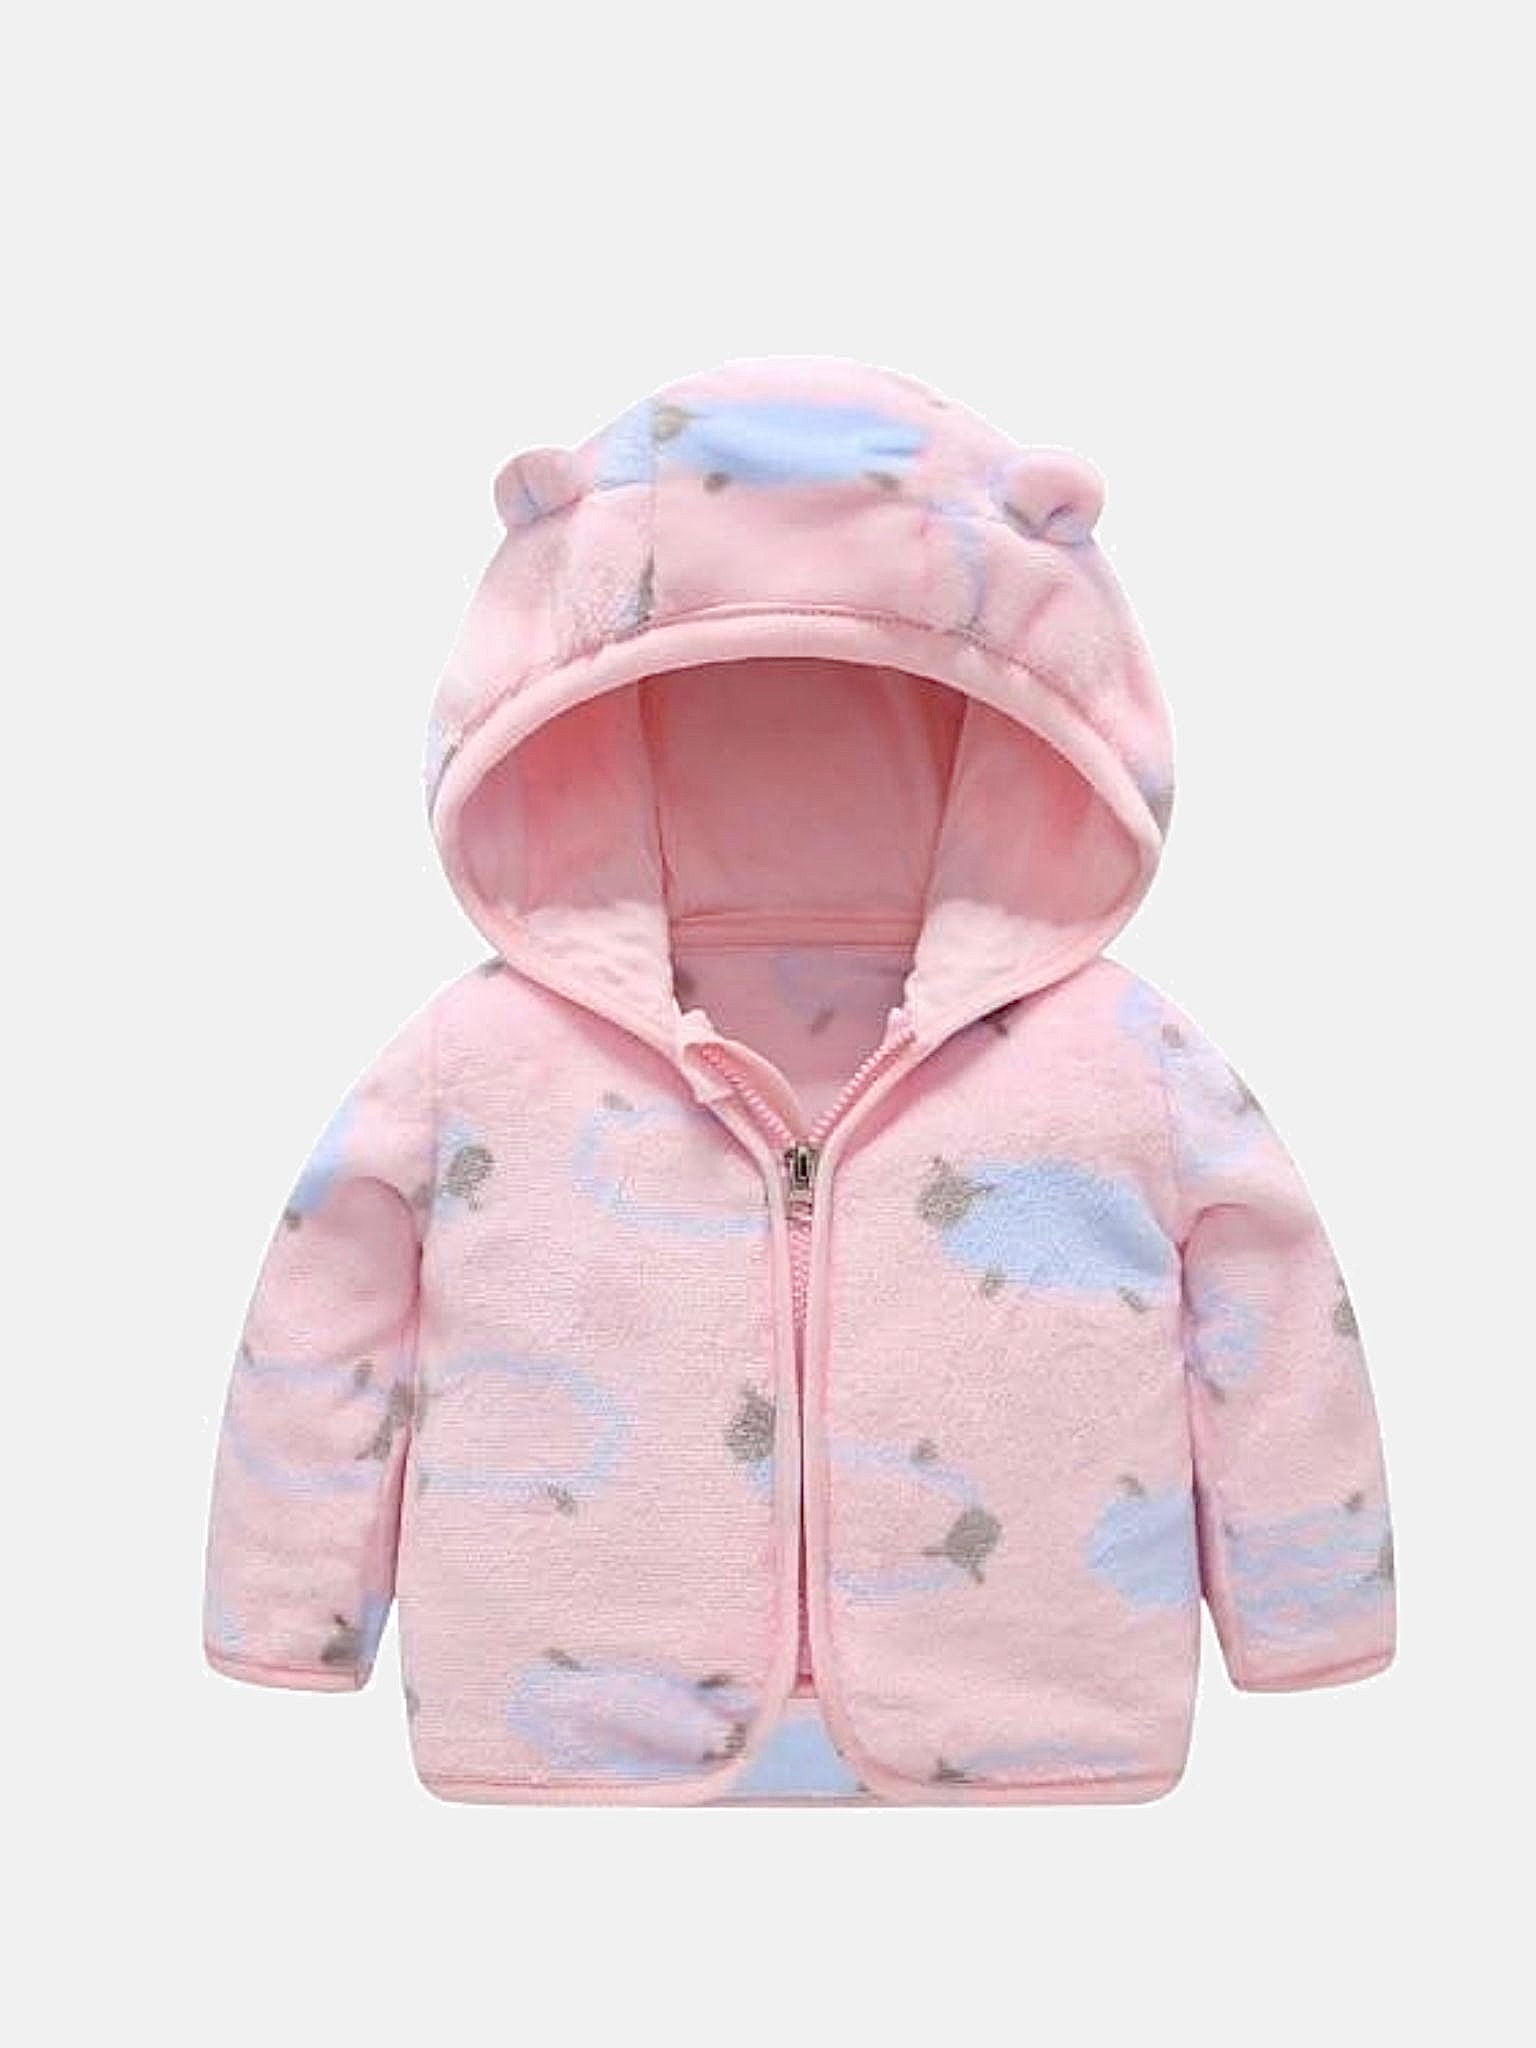 Baby Flannel Hooded Jacket   Thick warm pink sheep jackets newborn clothing Trend